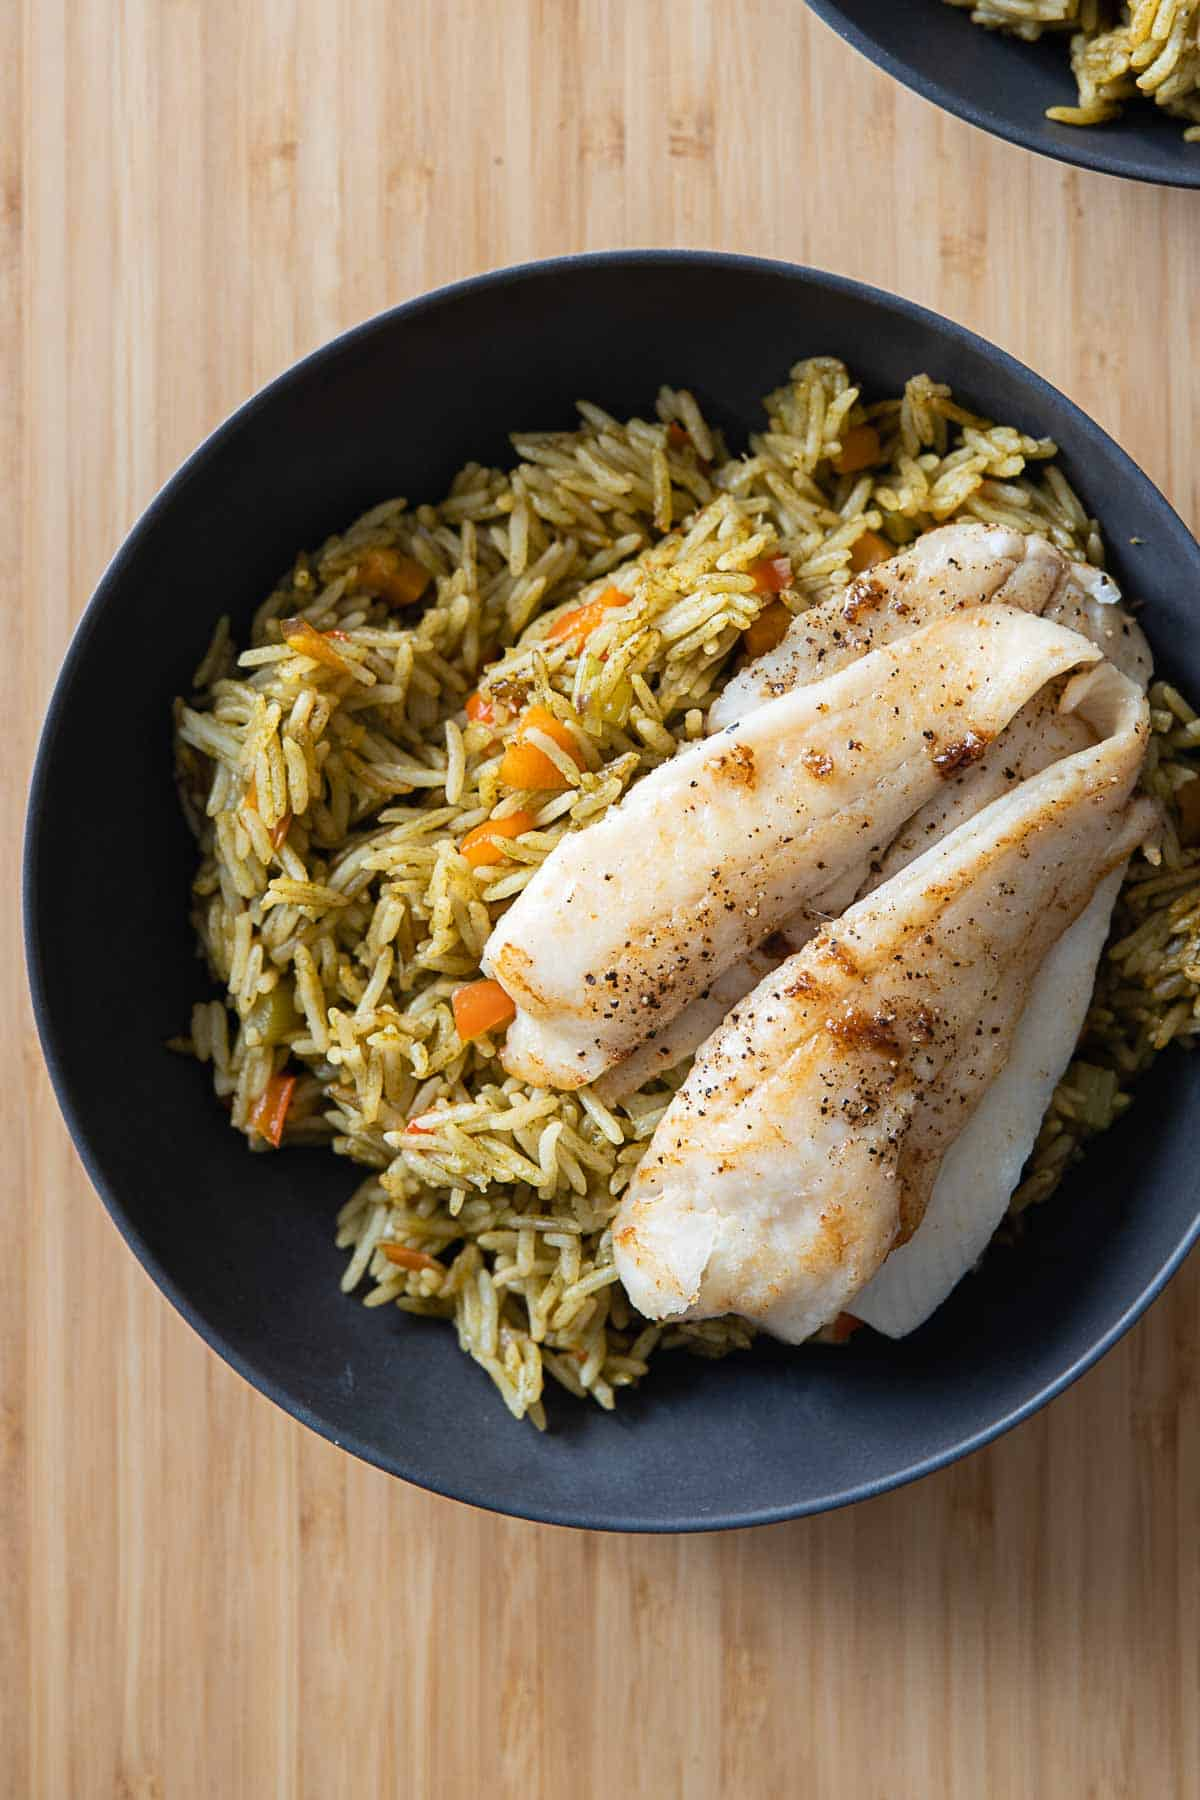 Green Rice and sole fillet in a grey bowl.